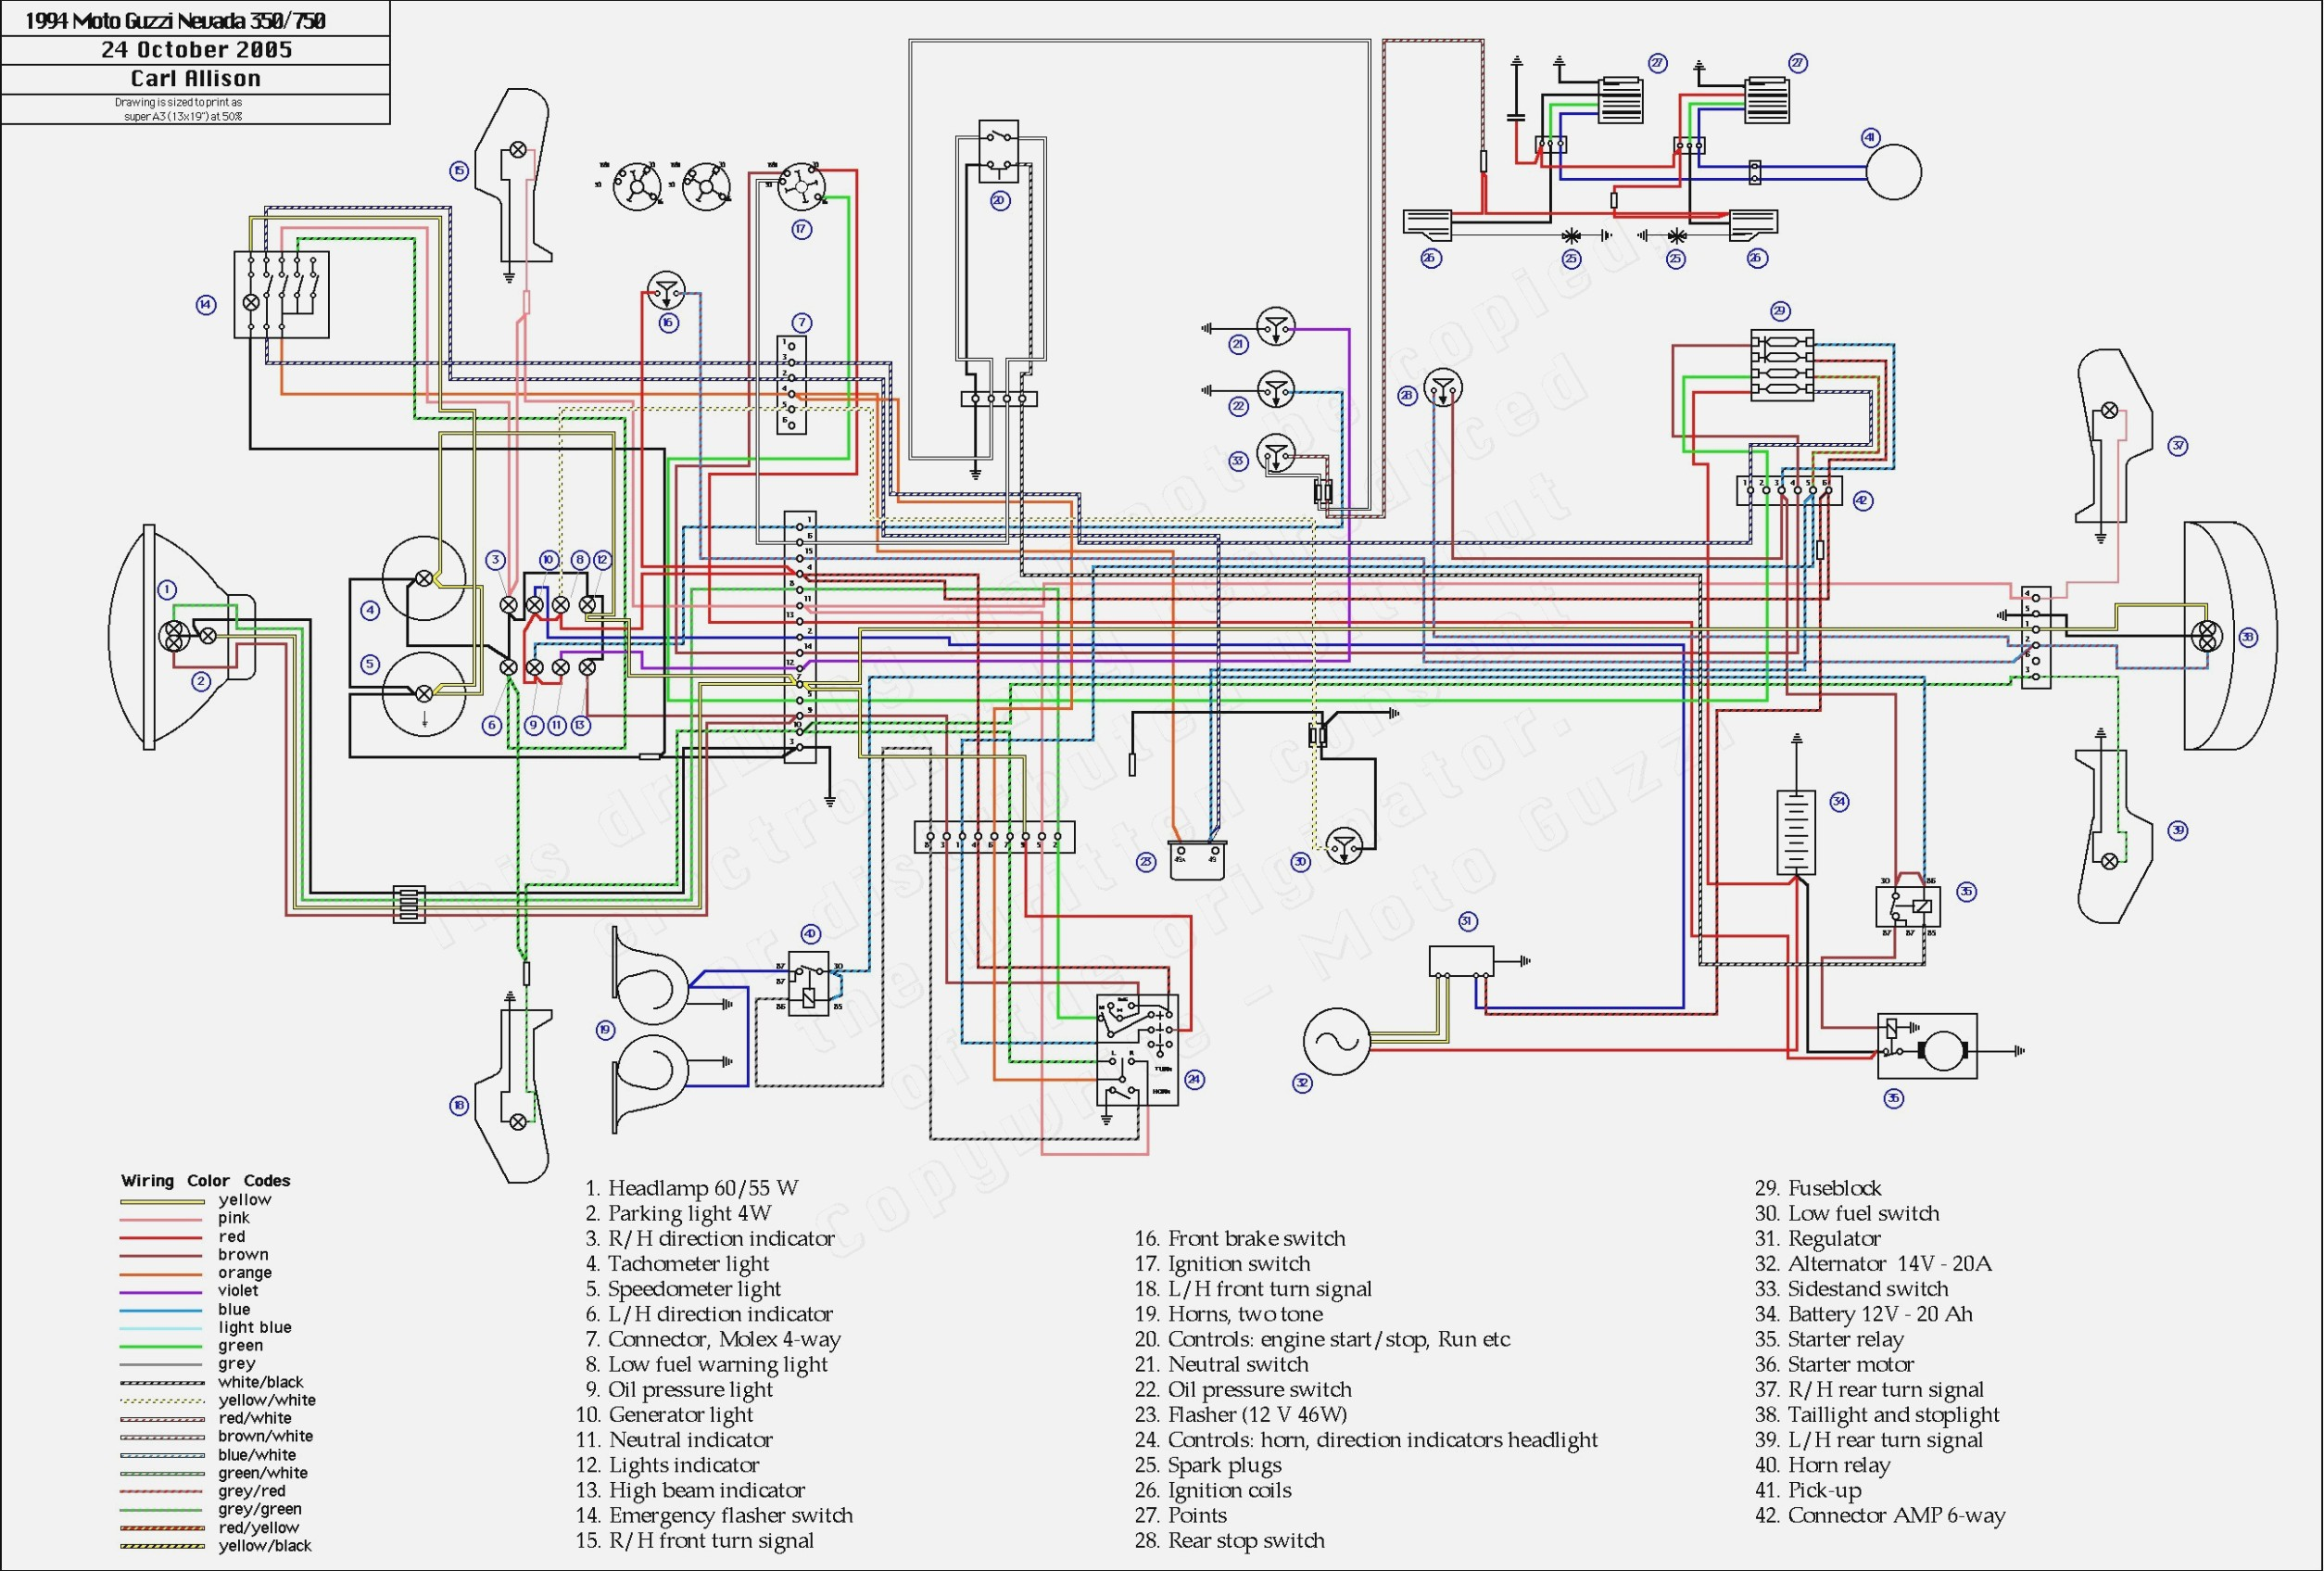 Turn Signal Flasher Wiring Diagram Dyna Turn Signal Wiring Diagram Wiring Diagram toolbox Of Turn Signal Flasher Wiring Diagram